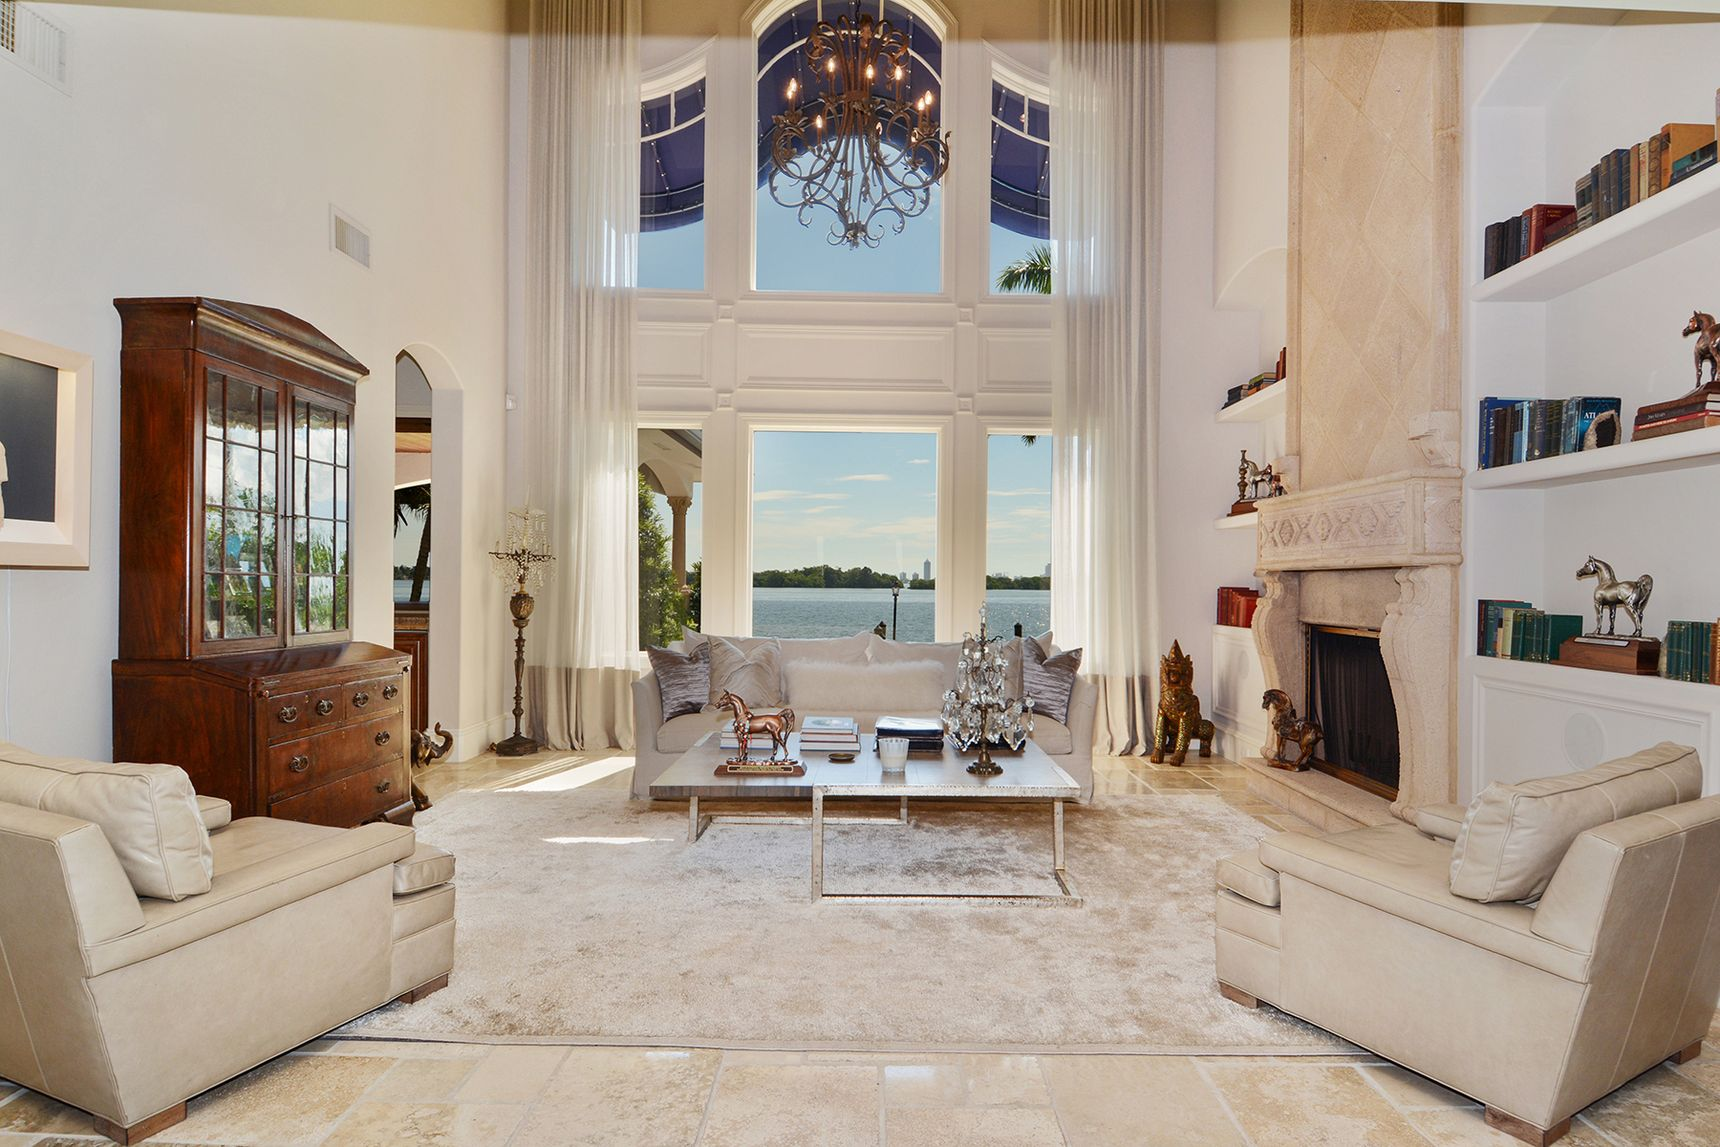 02_7321_Belle_Meade_Island_Living_Room_HR.0.jpg